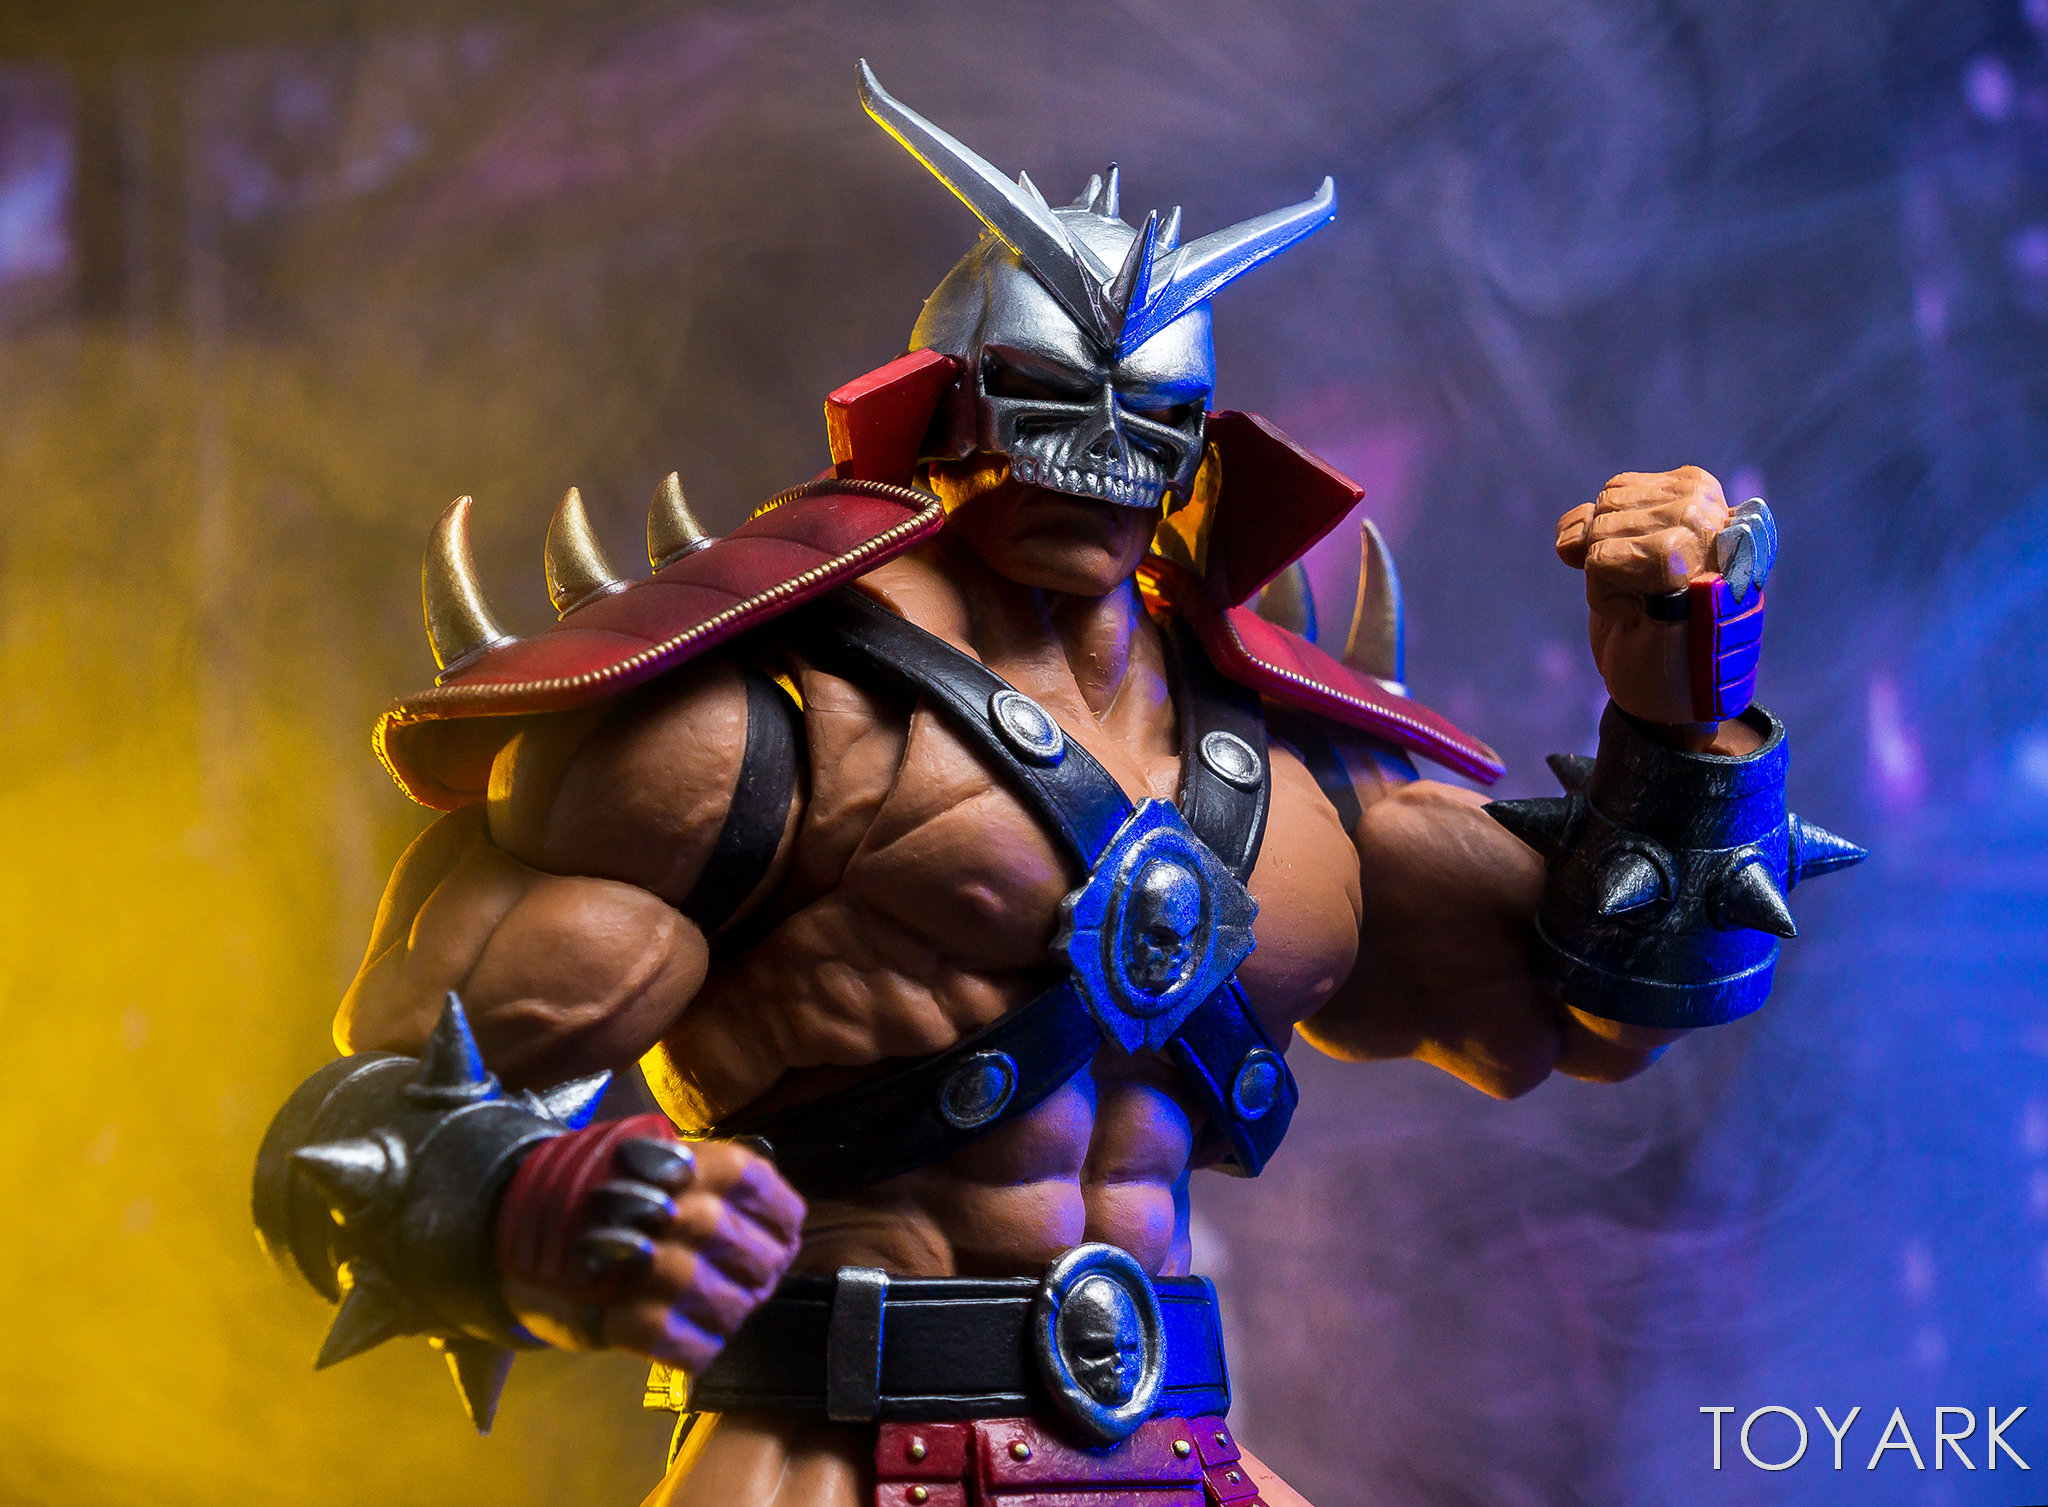 https://news.toyark.com/wp-content/uploads/sites/4/2018/06/Storm-Mortal-Kombat-Shao-Kahn-Figure-029.jpg